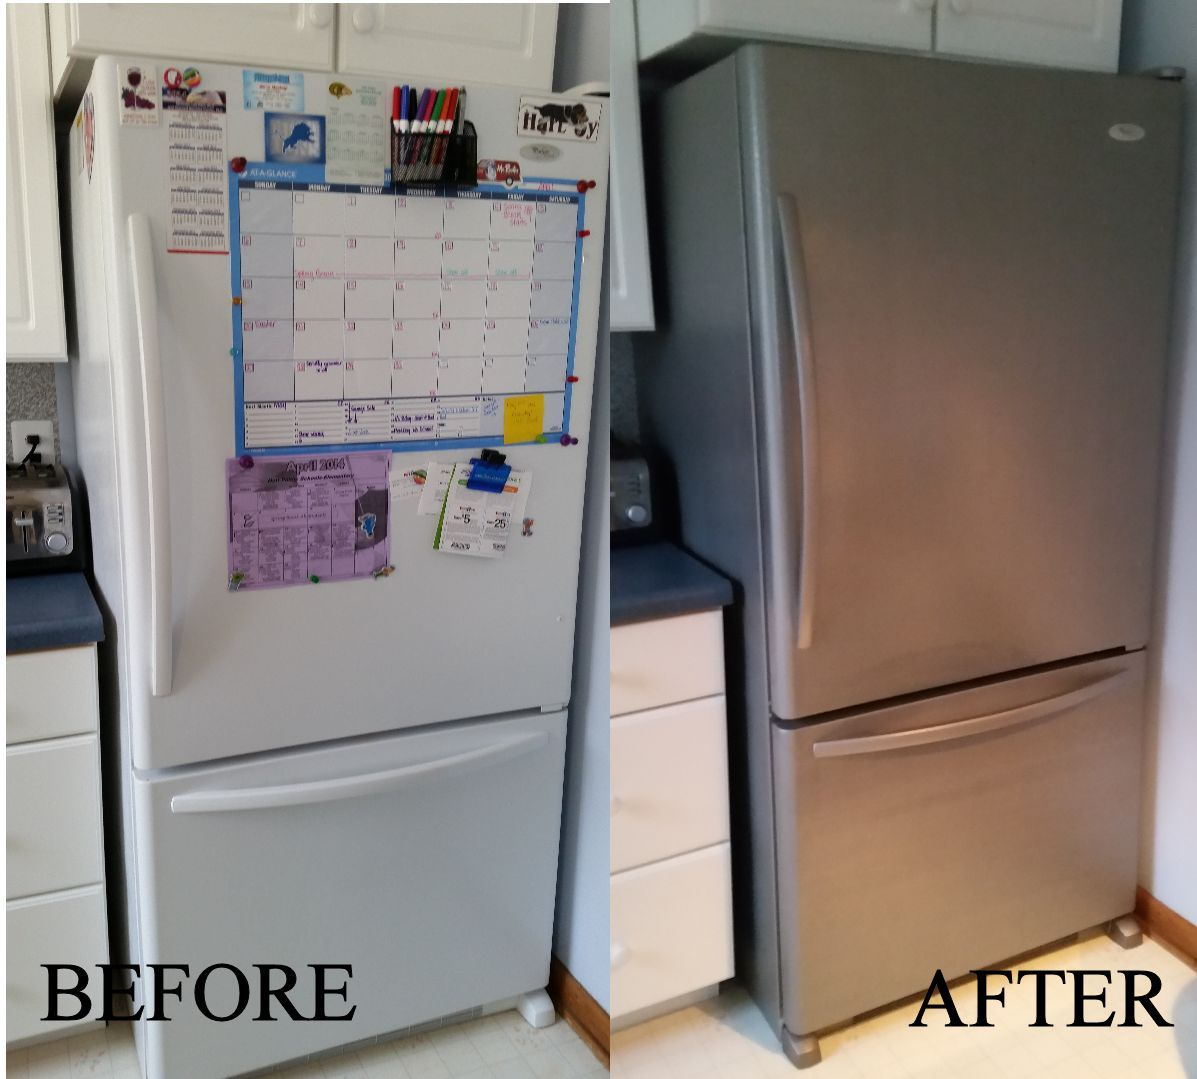 Rustoleum Or Thomas S Stainless Steel Paint Update Working Appliances To Look Like New Or Match A New Diy Kitchen Remodel Stainless Steel Paint Home Kitchens